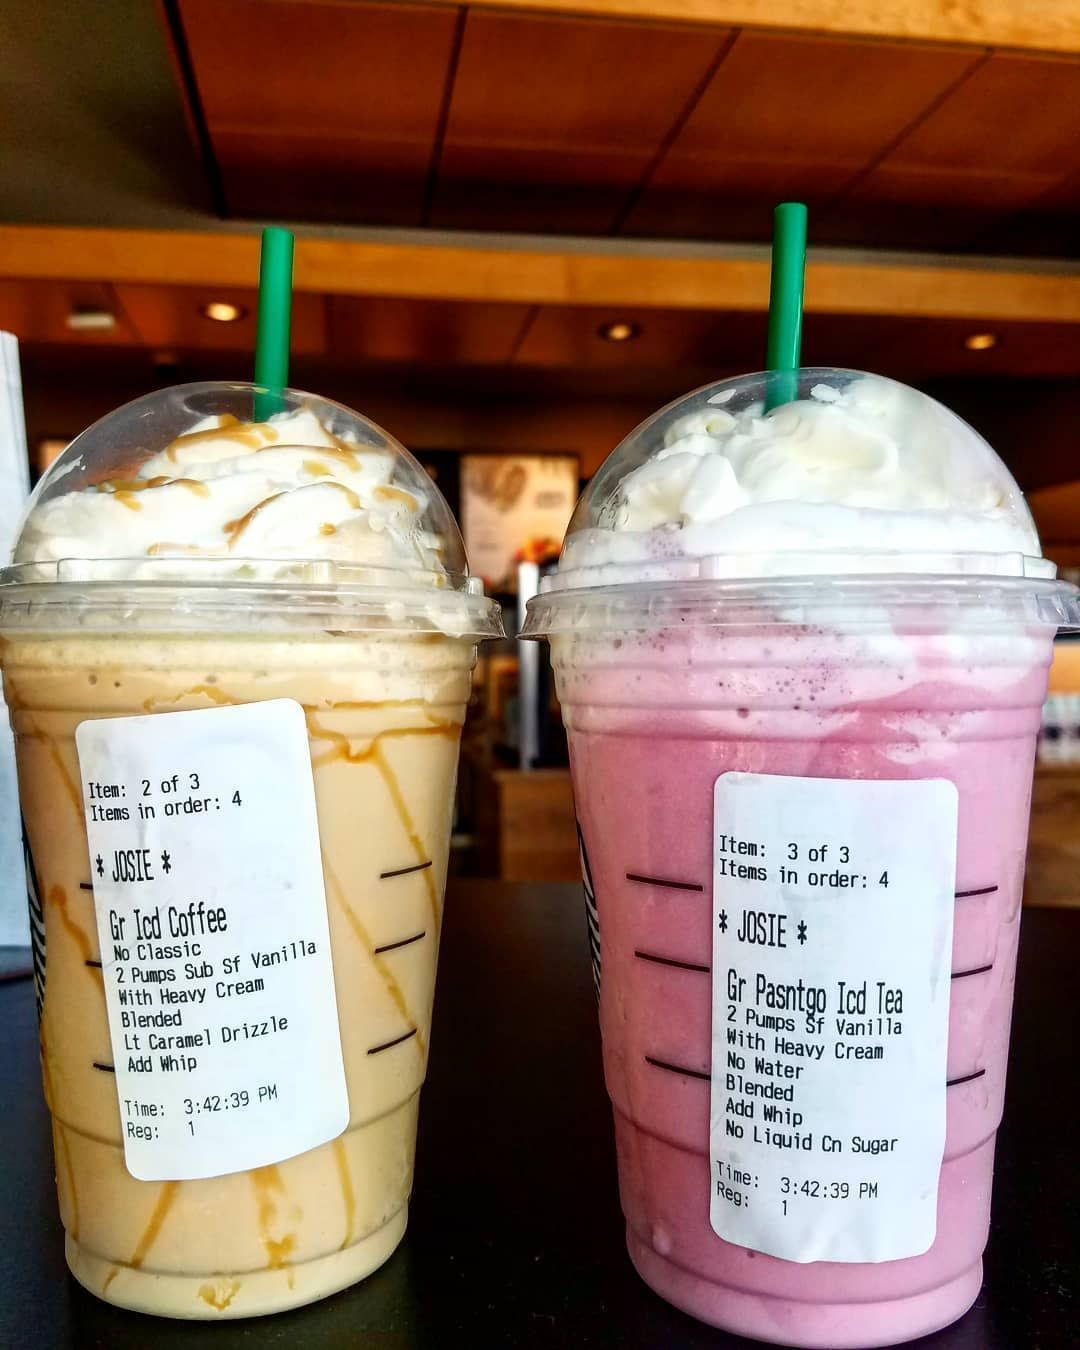 Best Keto Drinks at Starbucks: Your Guide to Low-Carb Starbucks Drinks Keto Starbucks Drinks: 15 Low-Carb Orders - Green and KetoKeto Starbucks Drinks: 15 Low-Carb Orders - Green and Keto